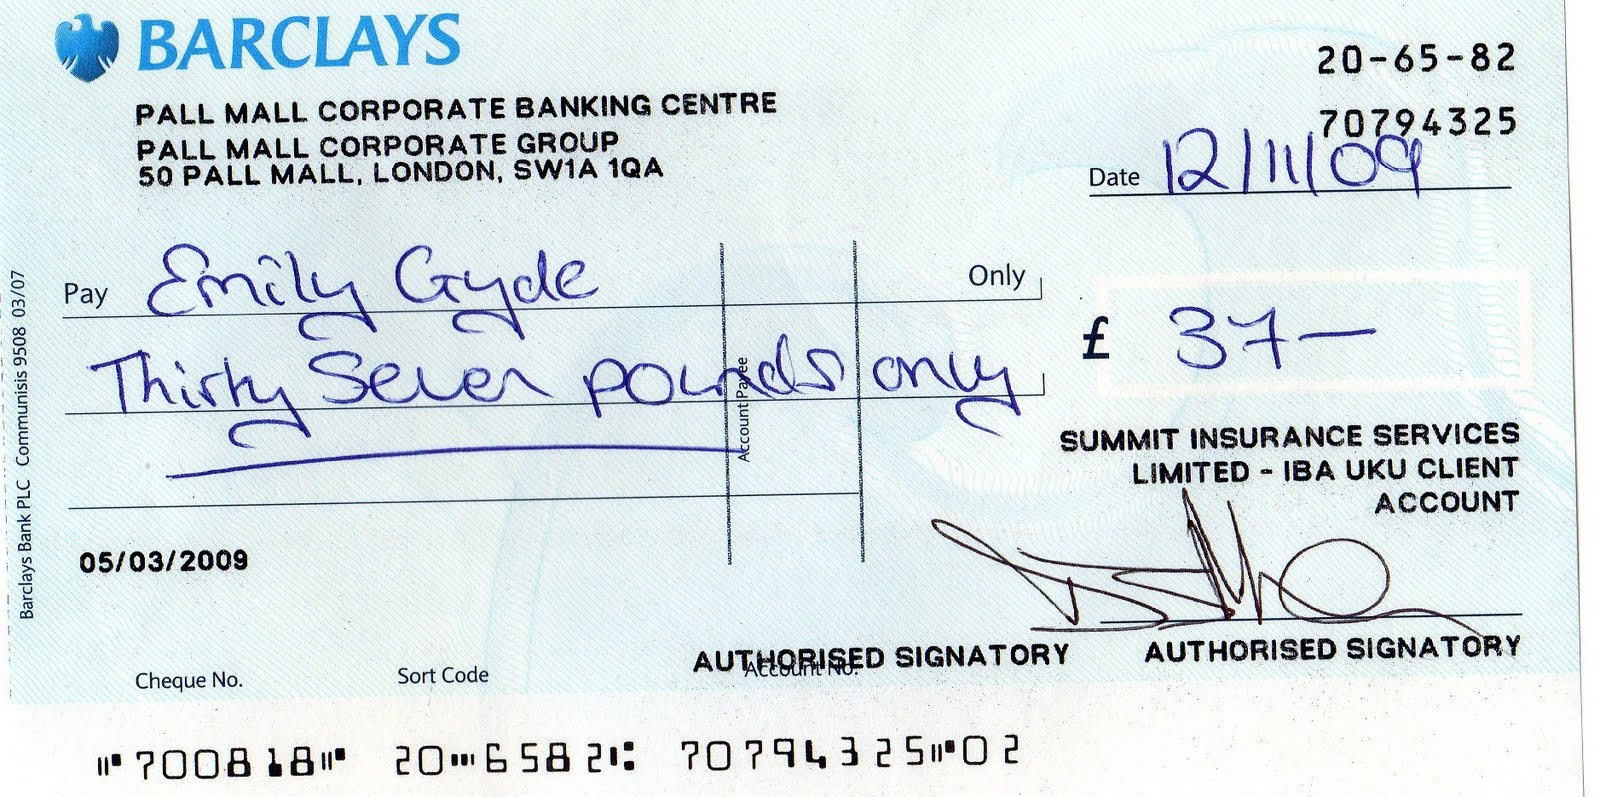 COMPUCOVER CHEQUE EXPOSED: